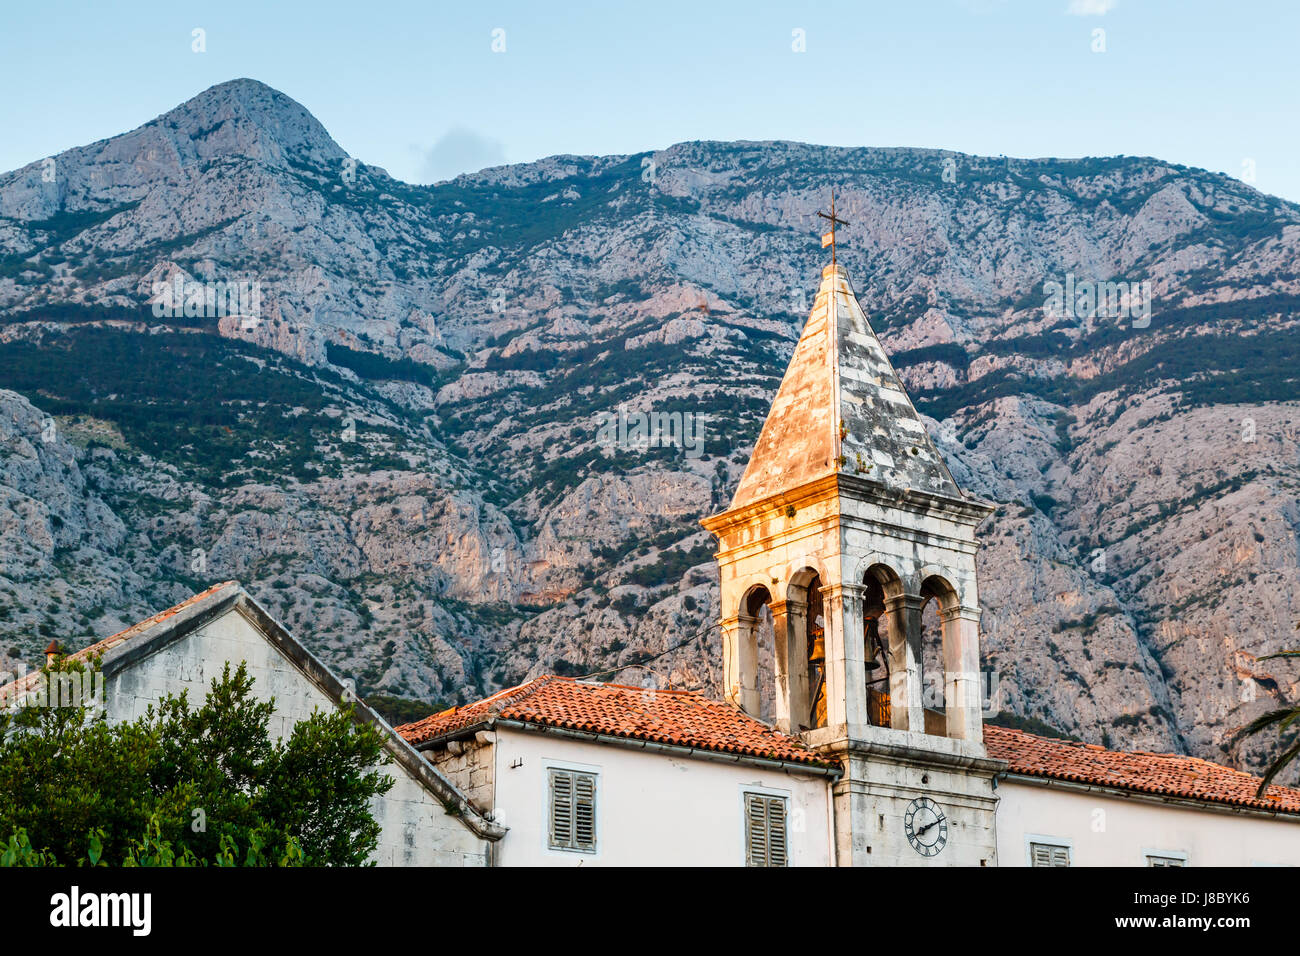 Medieval Bell Tower and Biokovo Mountains in the Background, Makarska, Croatia Stock Photo